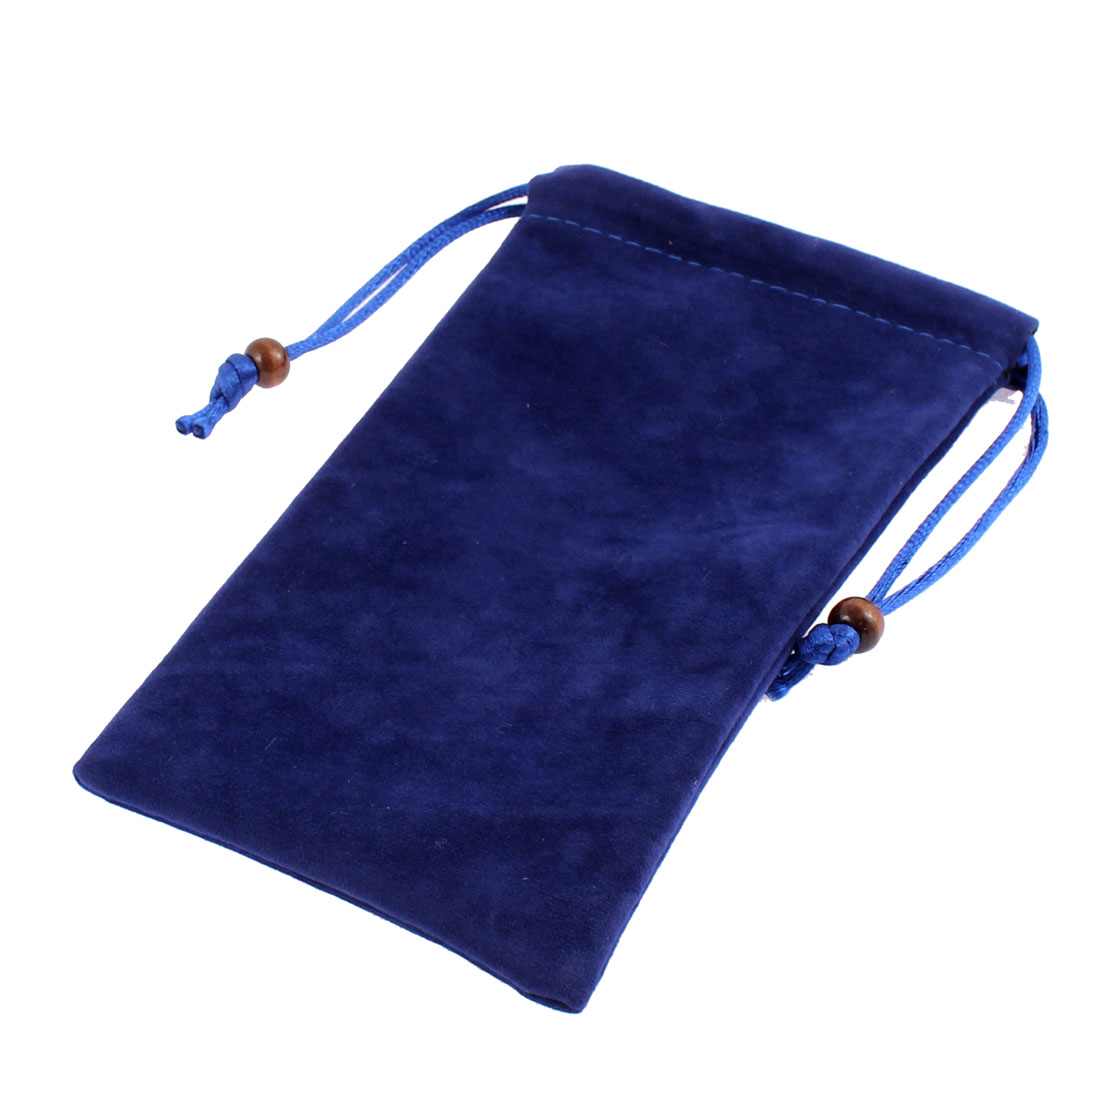 Velvet Drawstring Closure Cell Phone Pouch Sleeve Bag Royal Blue 15.5 x 9.5cm